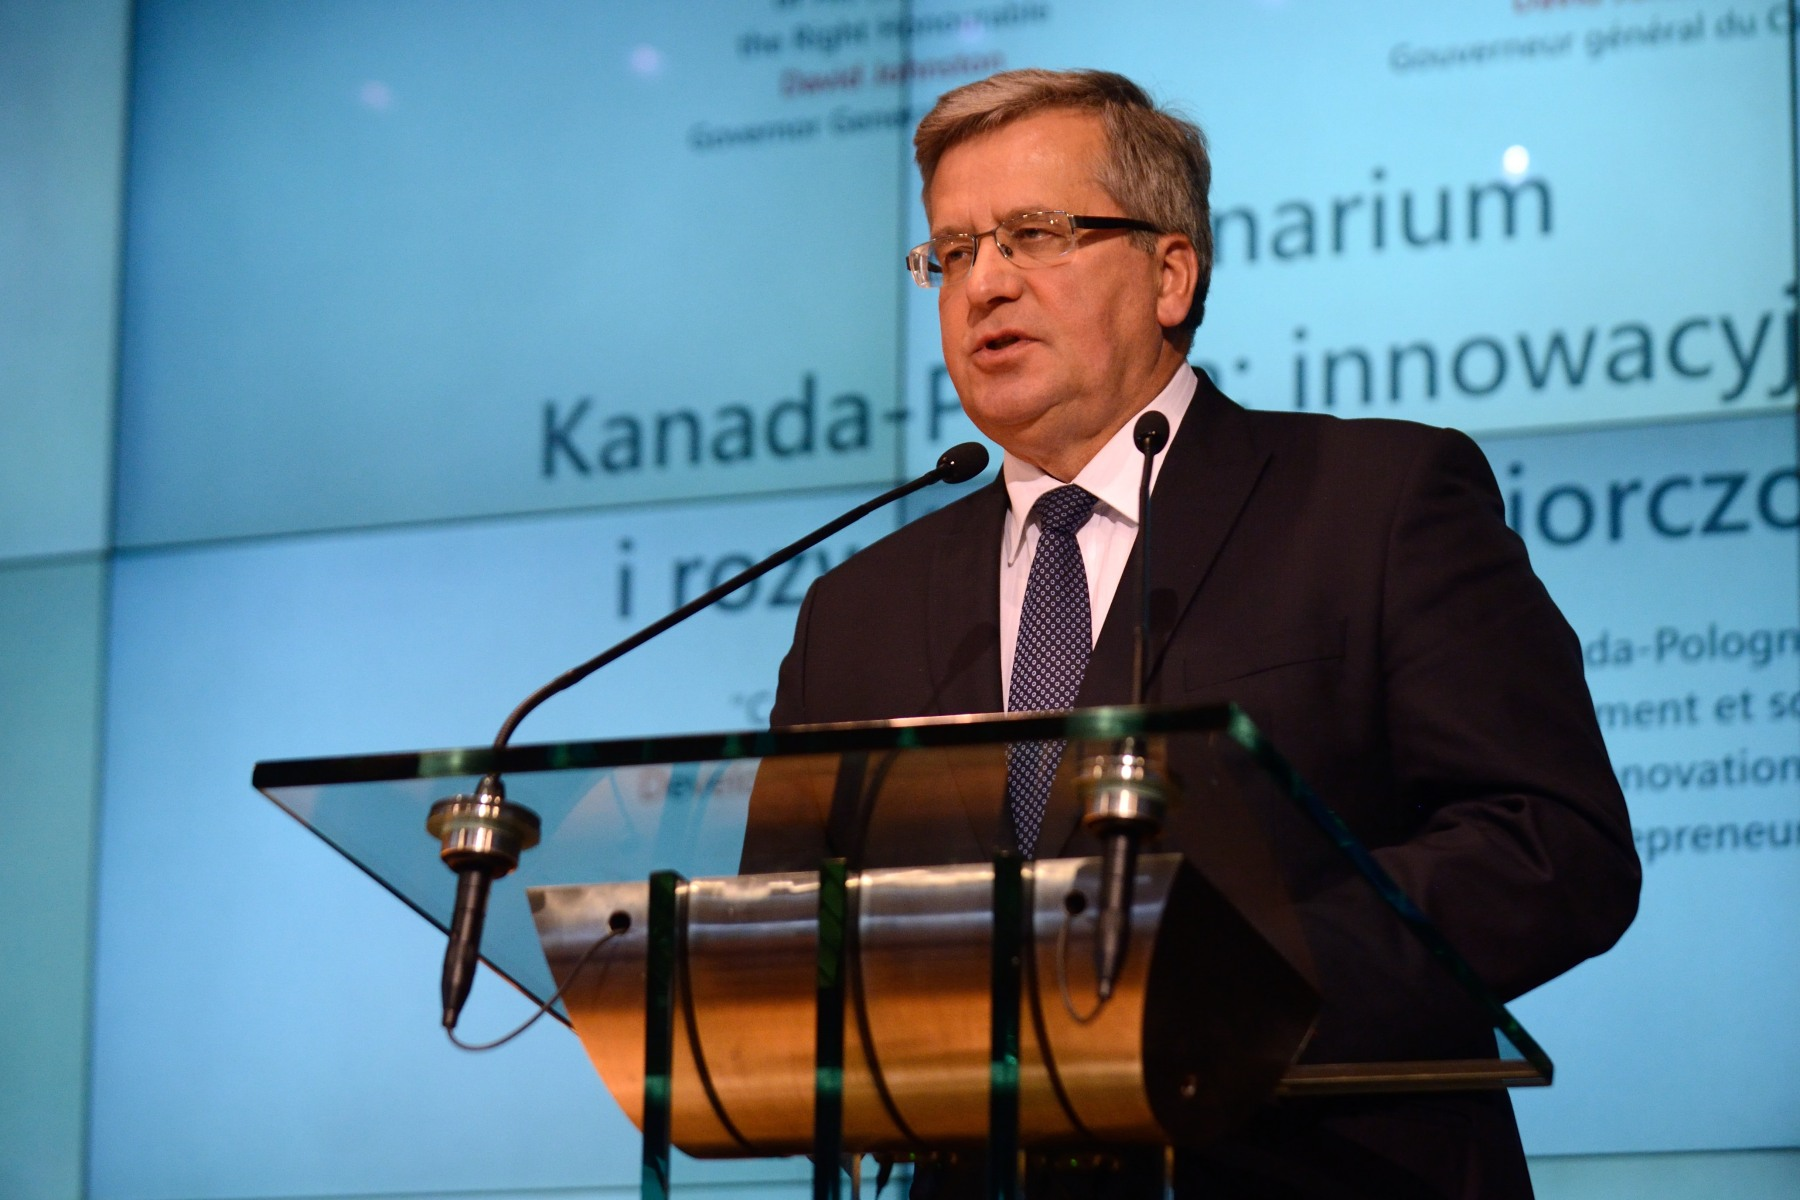 President Komorowski delivered a speech on this occasion.